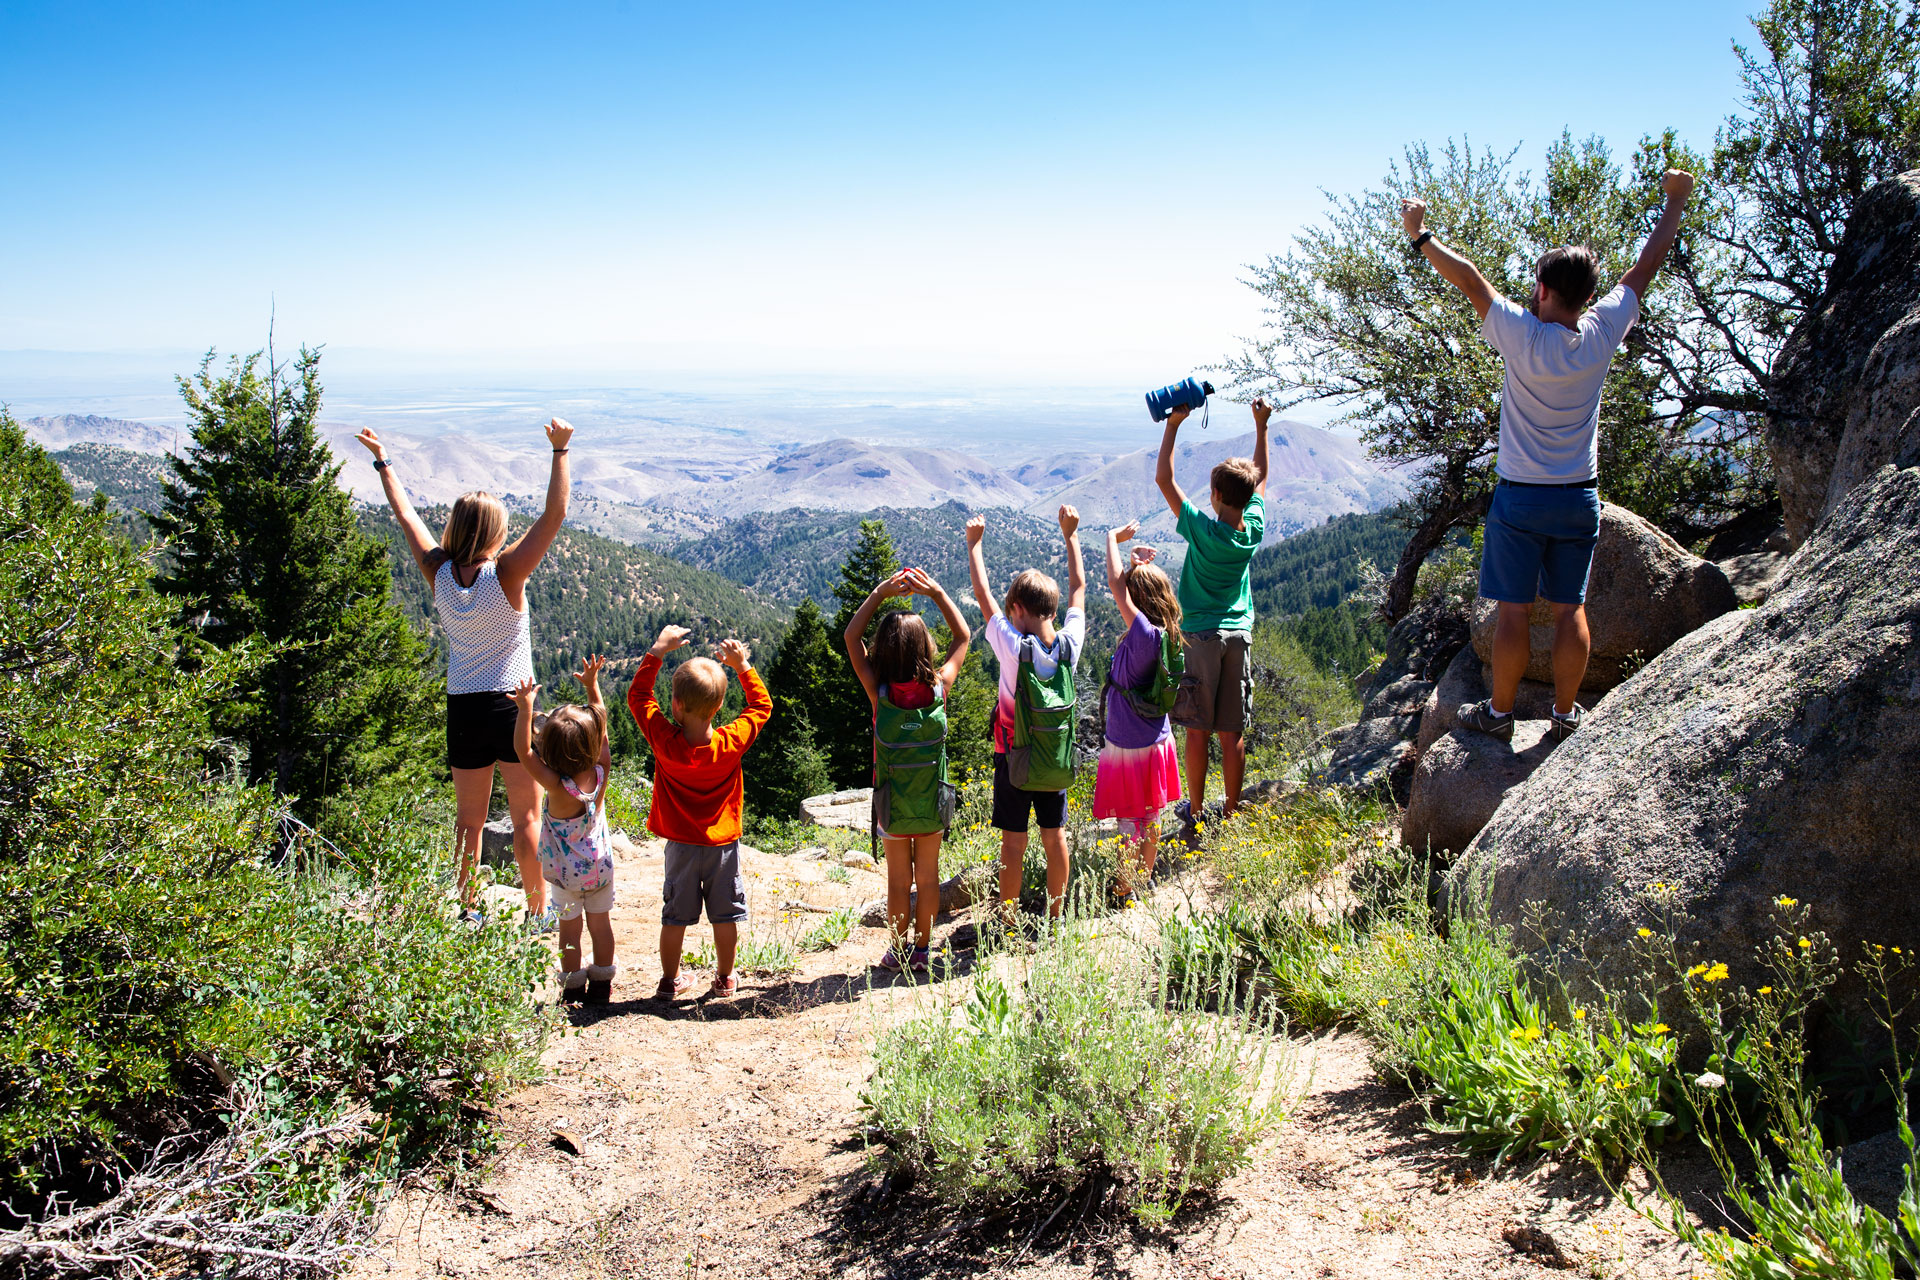 family of 8 cheering as we see them from behind on top of a mountain